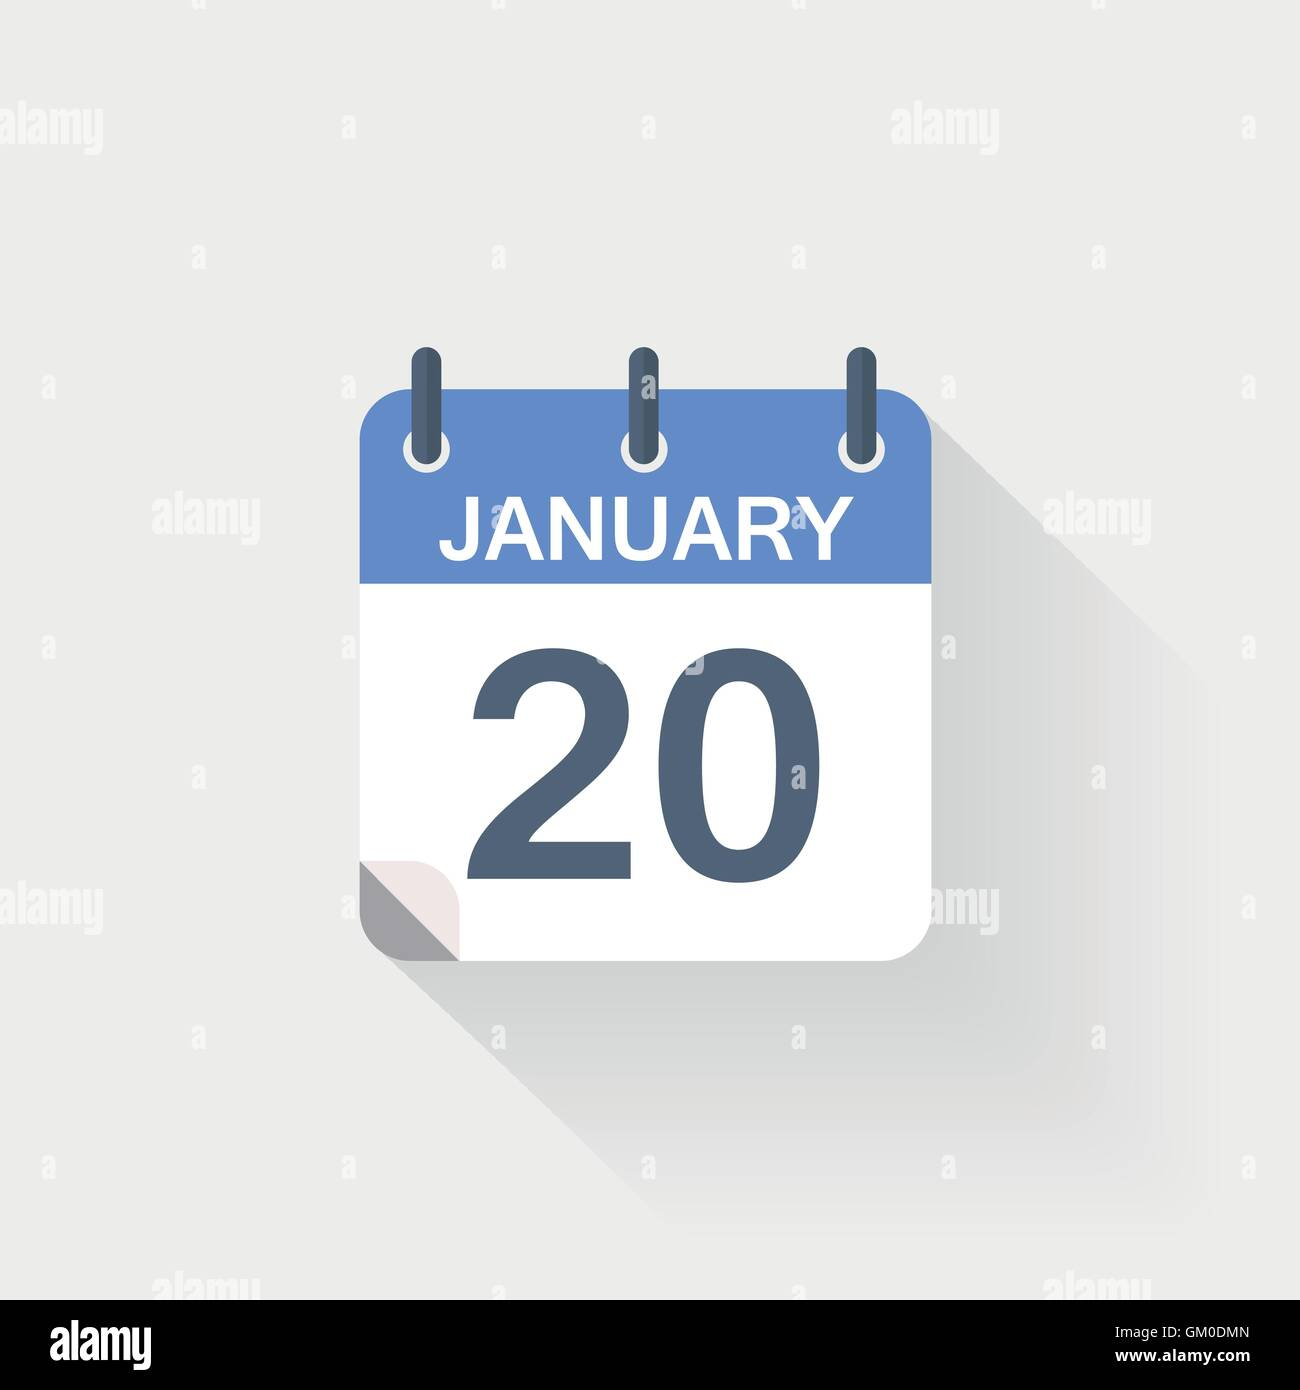 20 january calendar icon on grey background - Stock Vector